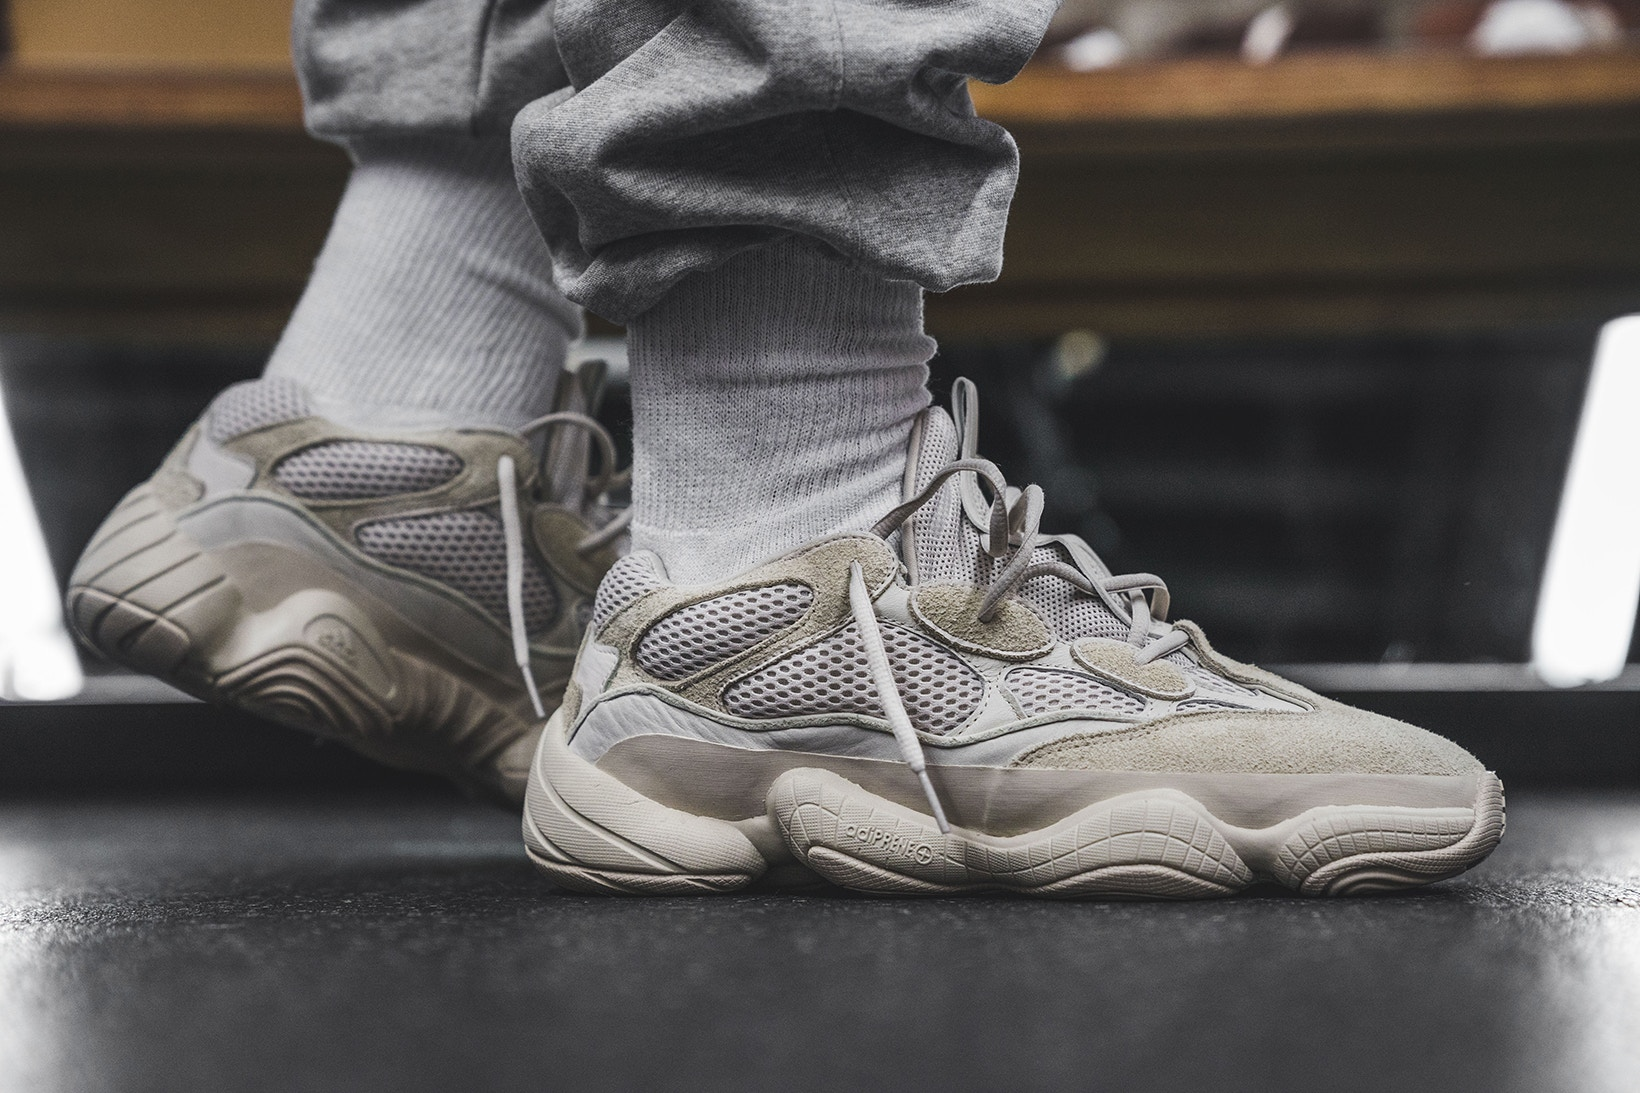 Yeezy 500 Runner Desert Rat Blush : on feet